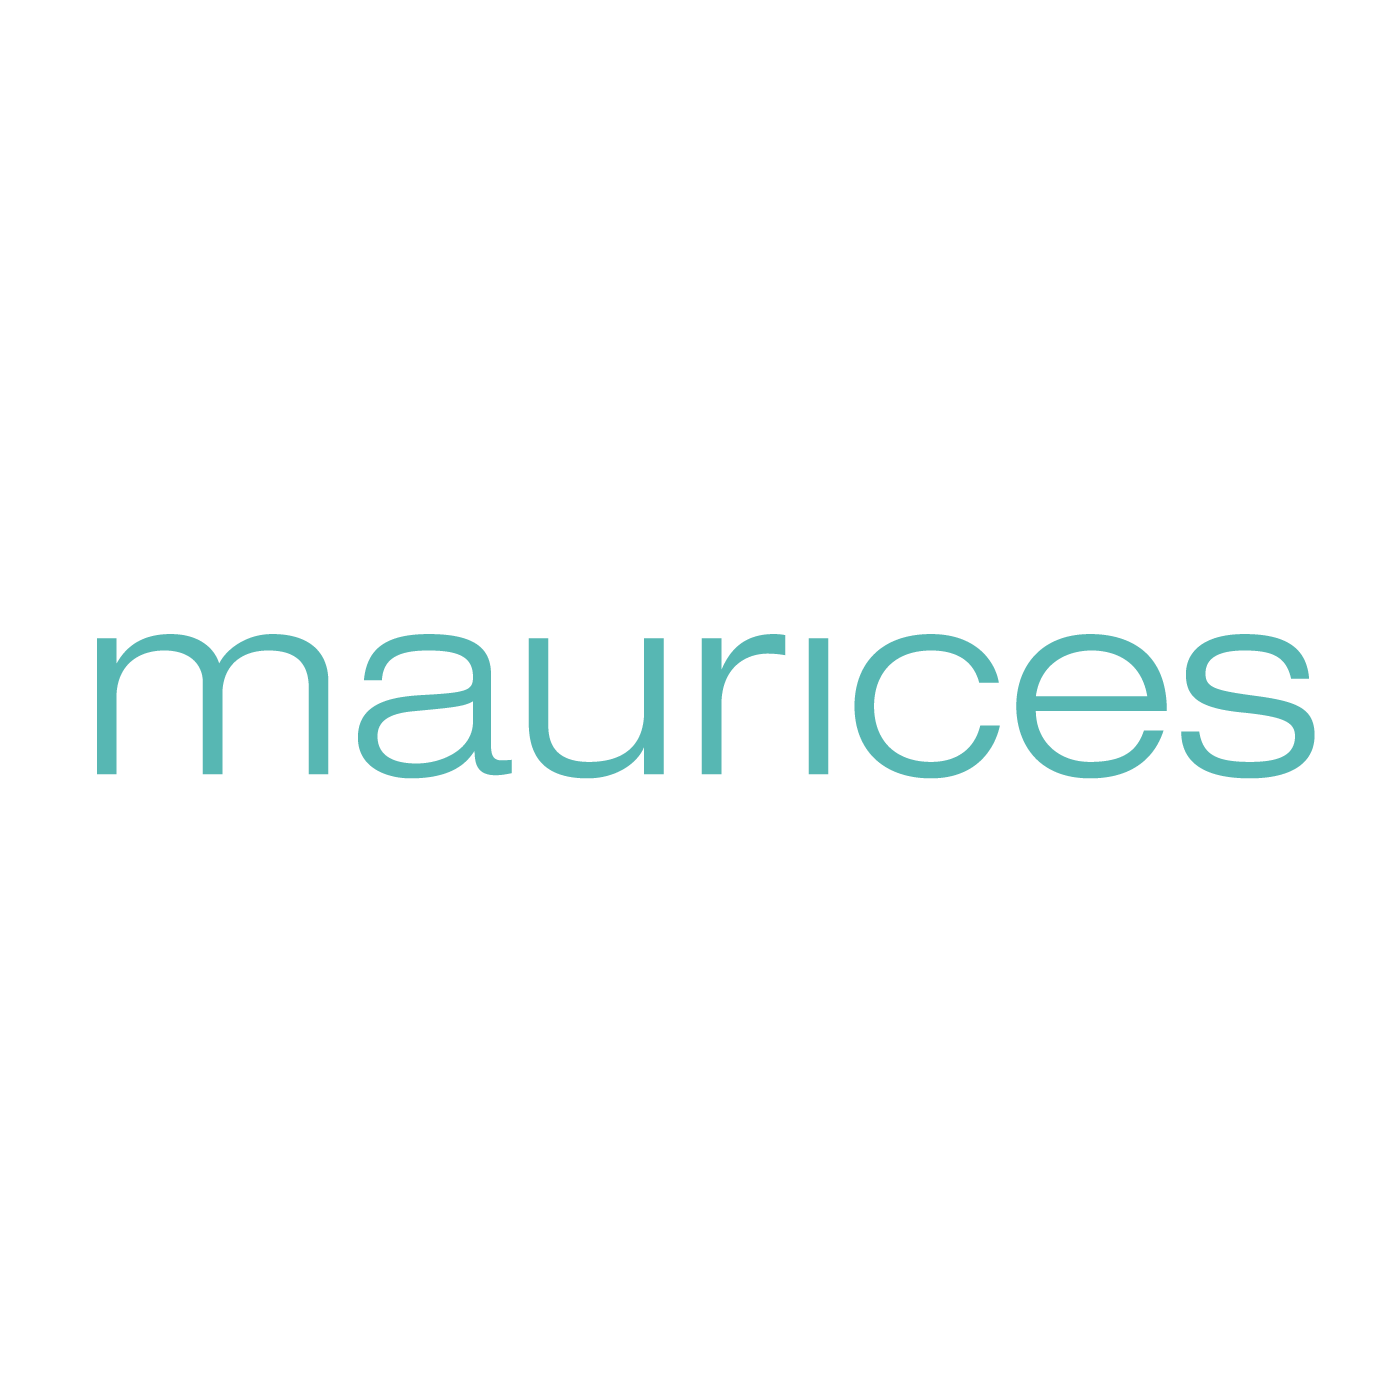 Maurices - Lindsay, ON K9V 4Z1 - (705)328-3564 | ShowMeLocal.com